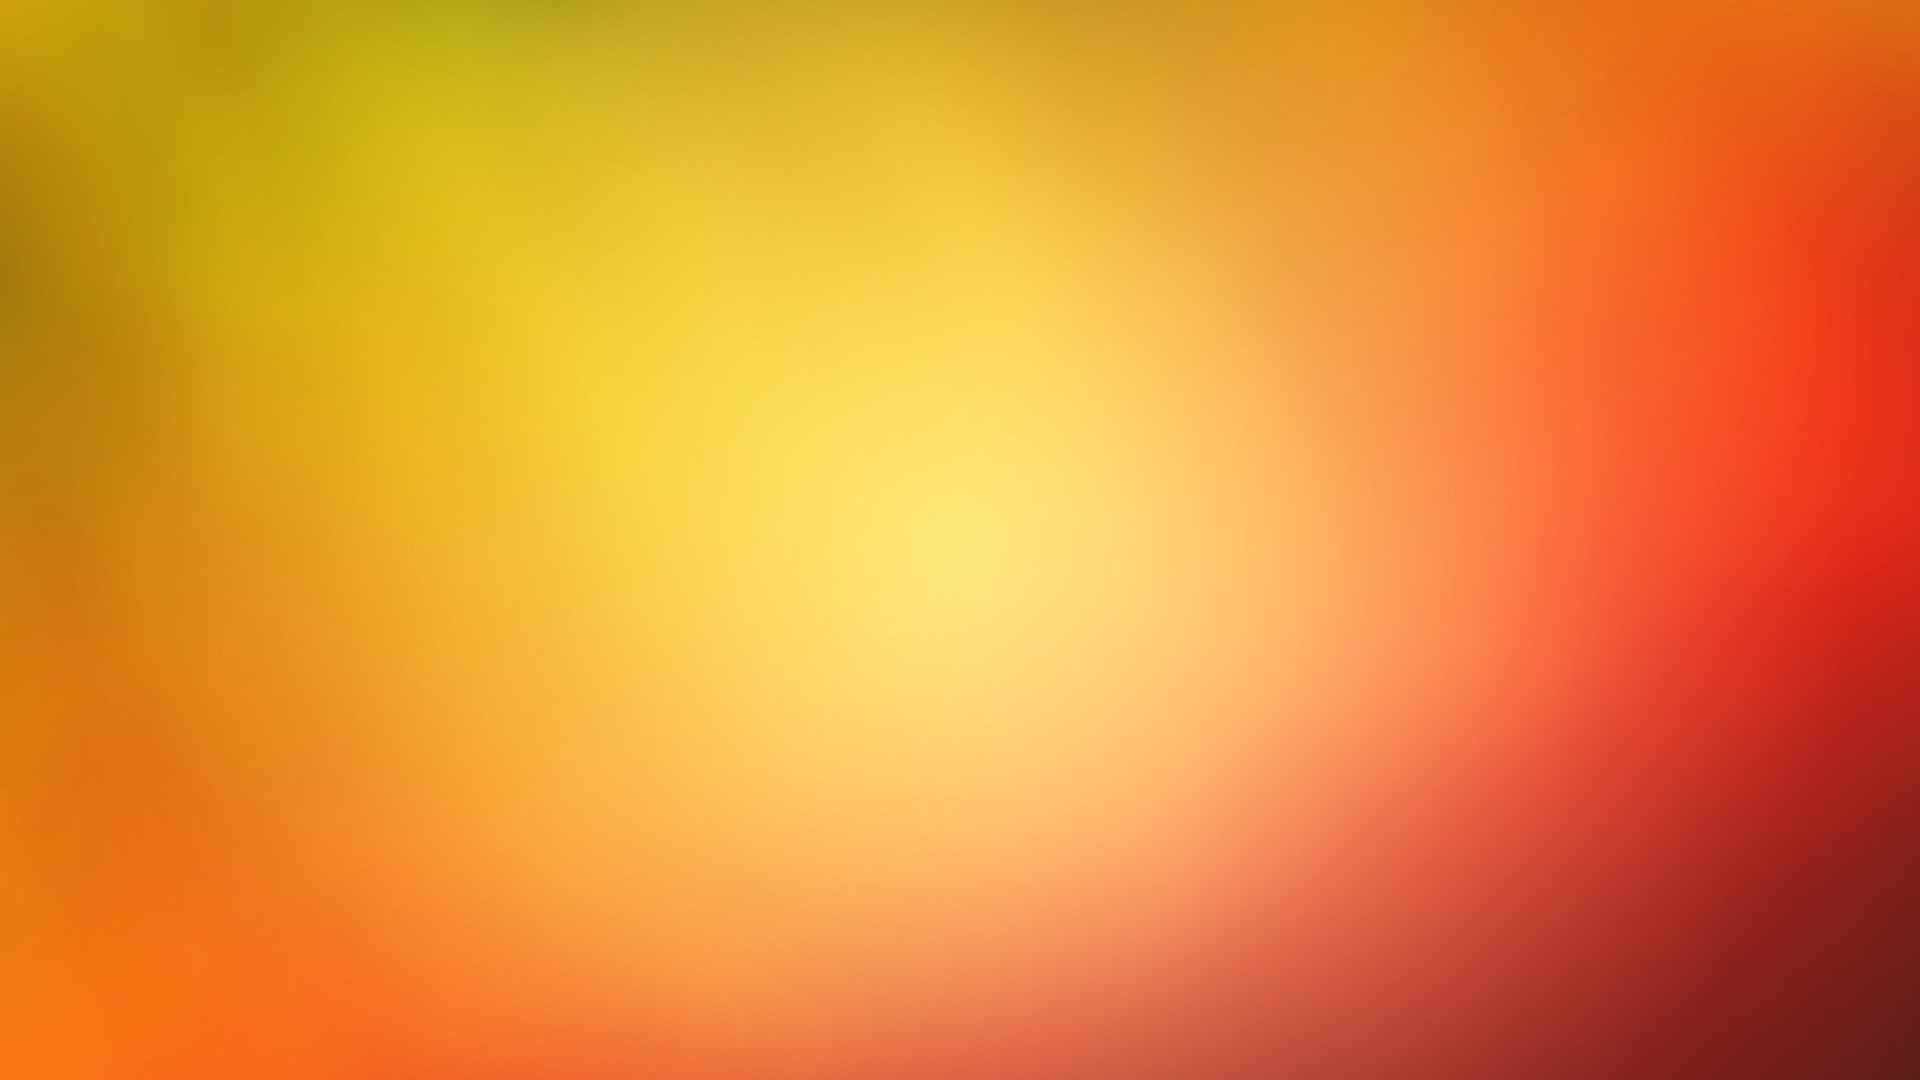 69 Bright Colorful Backgrounds On Wallpapersafari